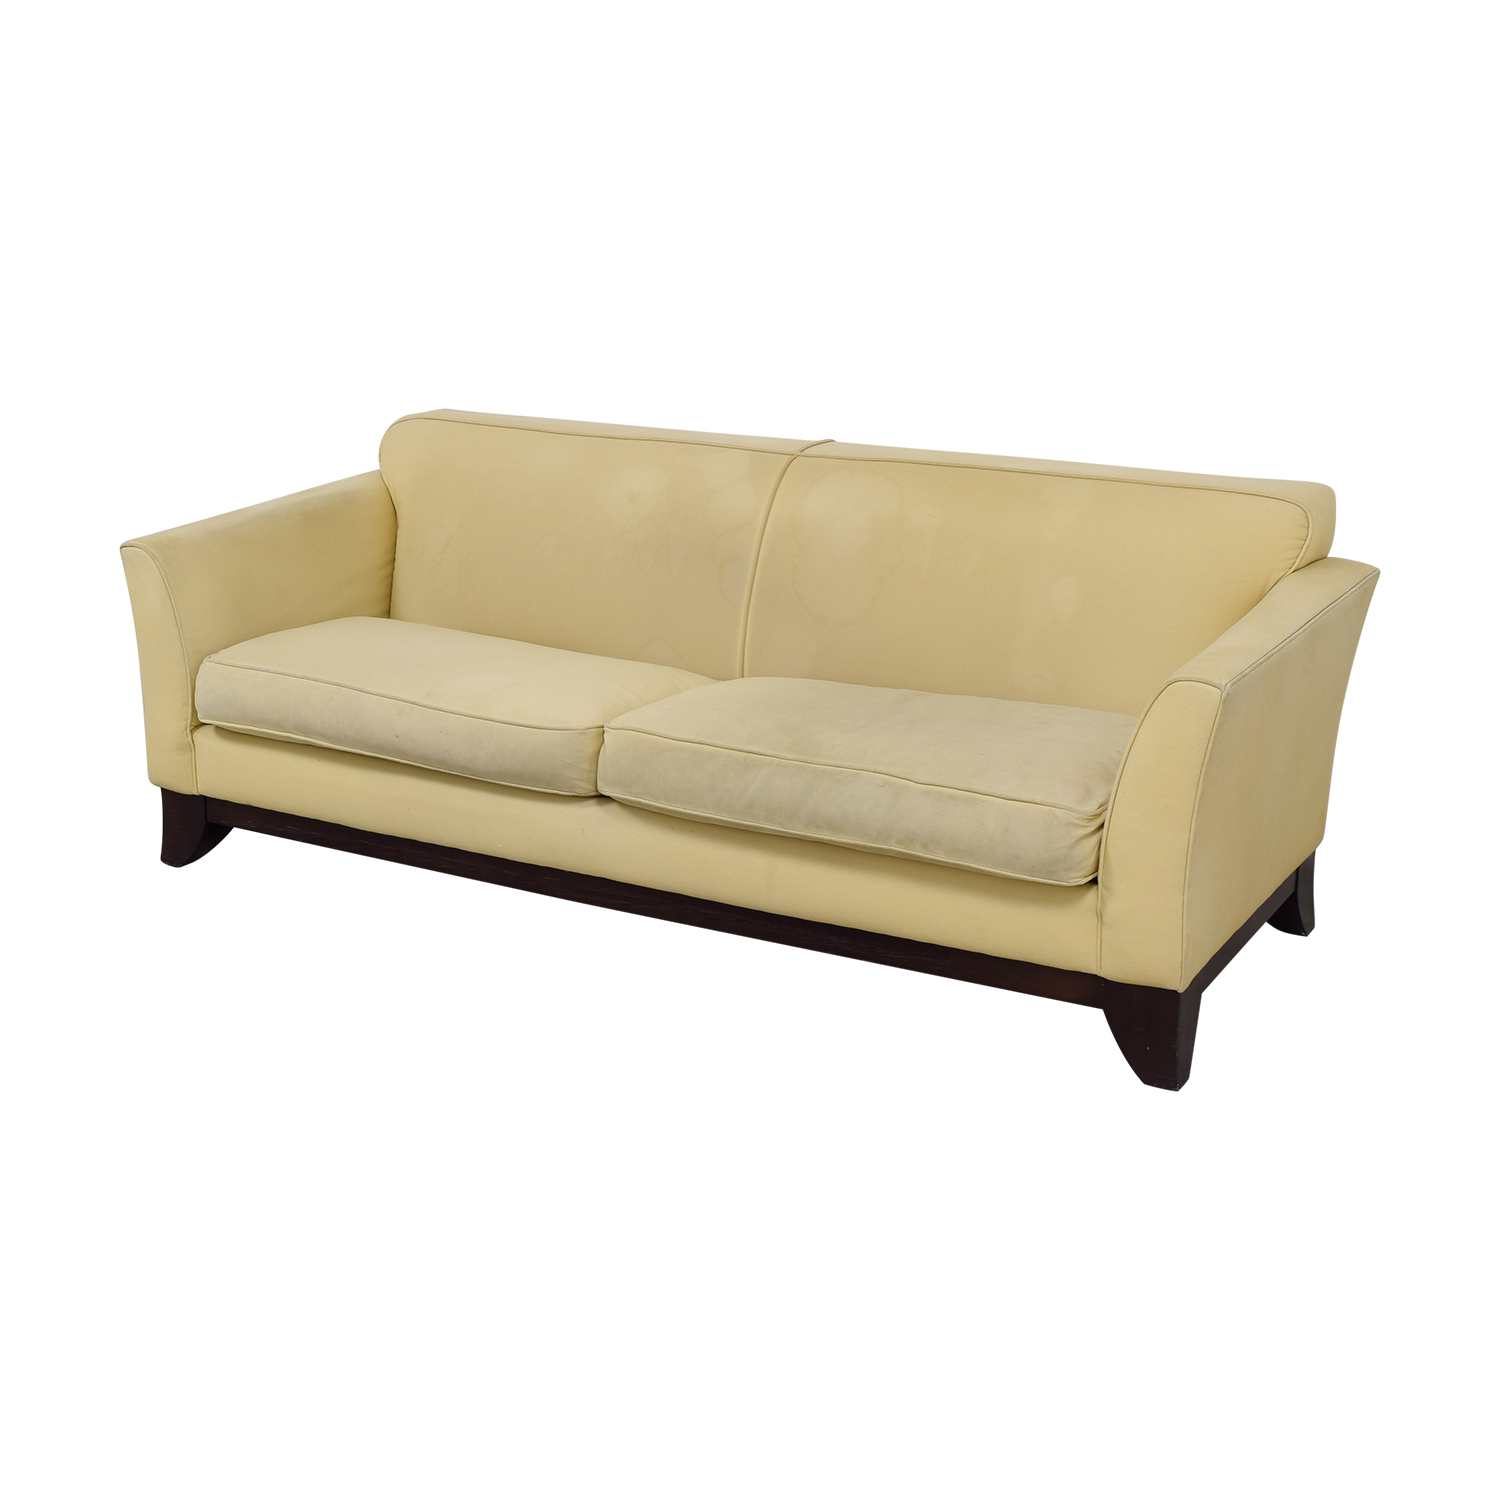 Pottery Barn Pottery Barn Beige Upholstered Two